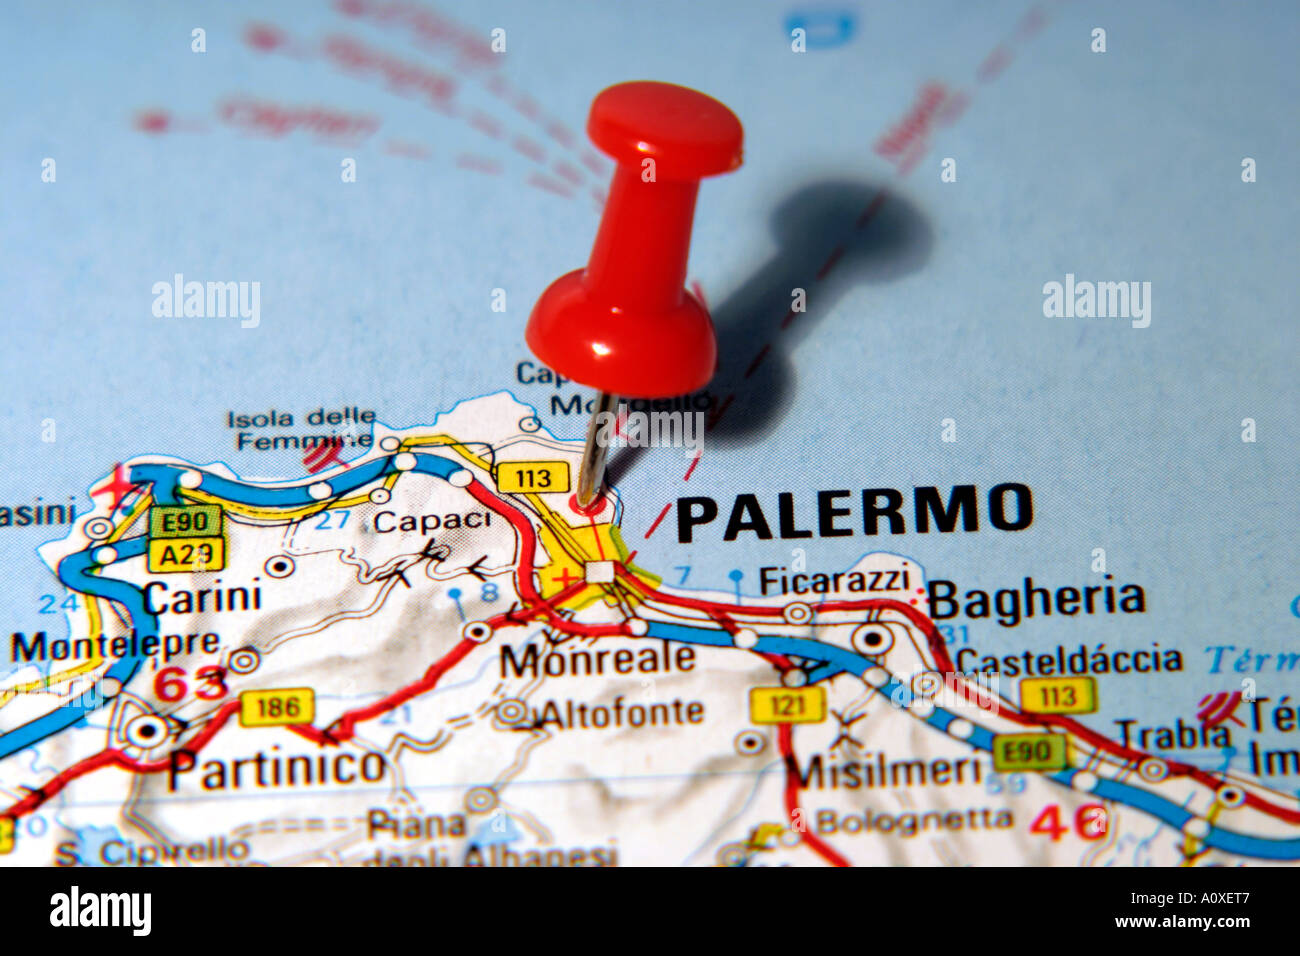 Map Pin Pointing To Palermo Sicily Italy On A Road Map Stock